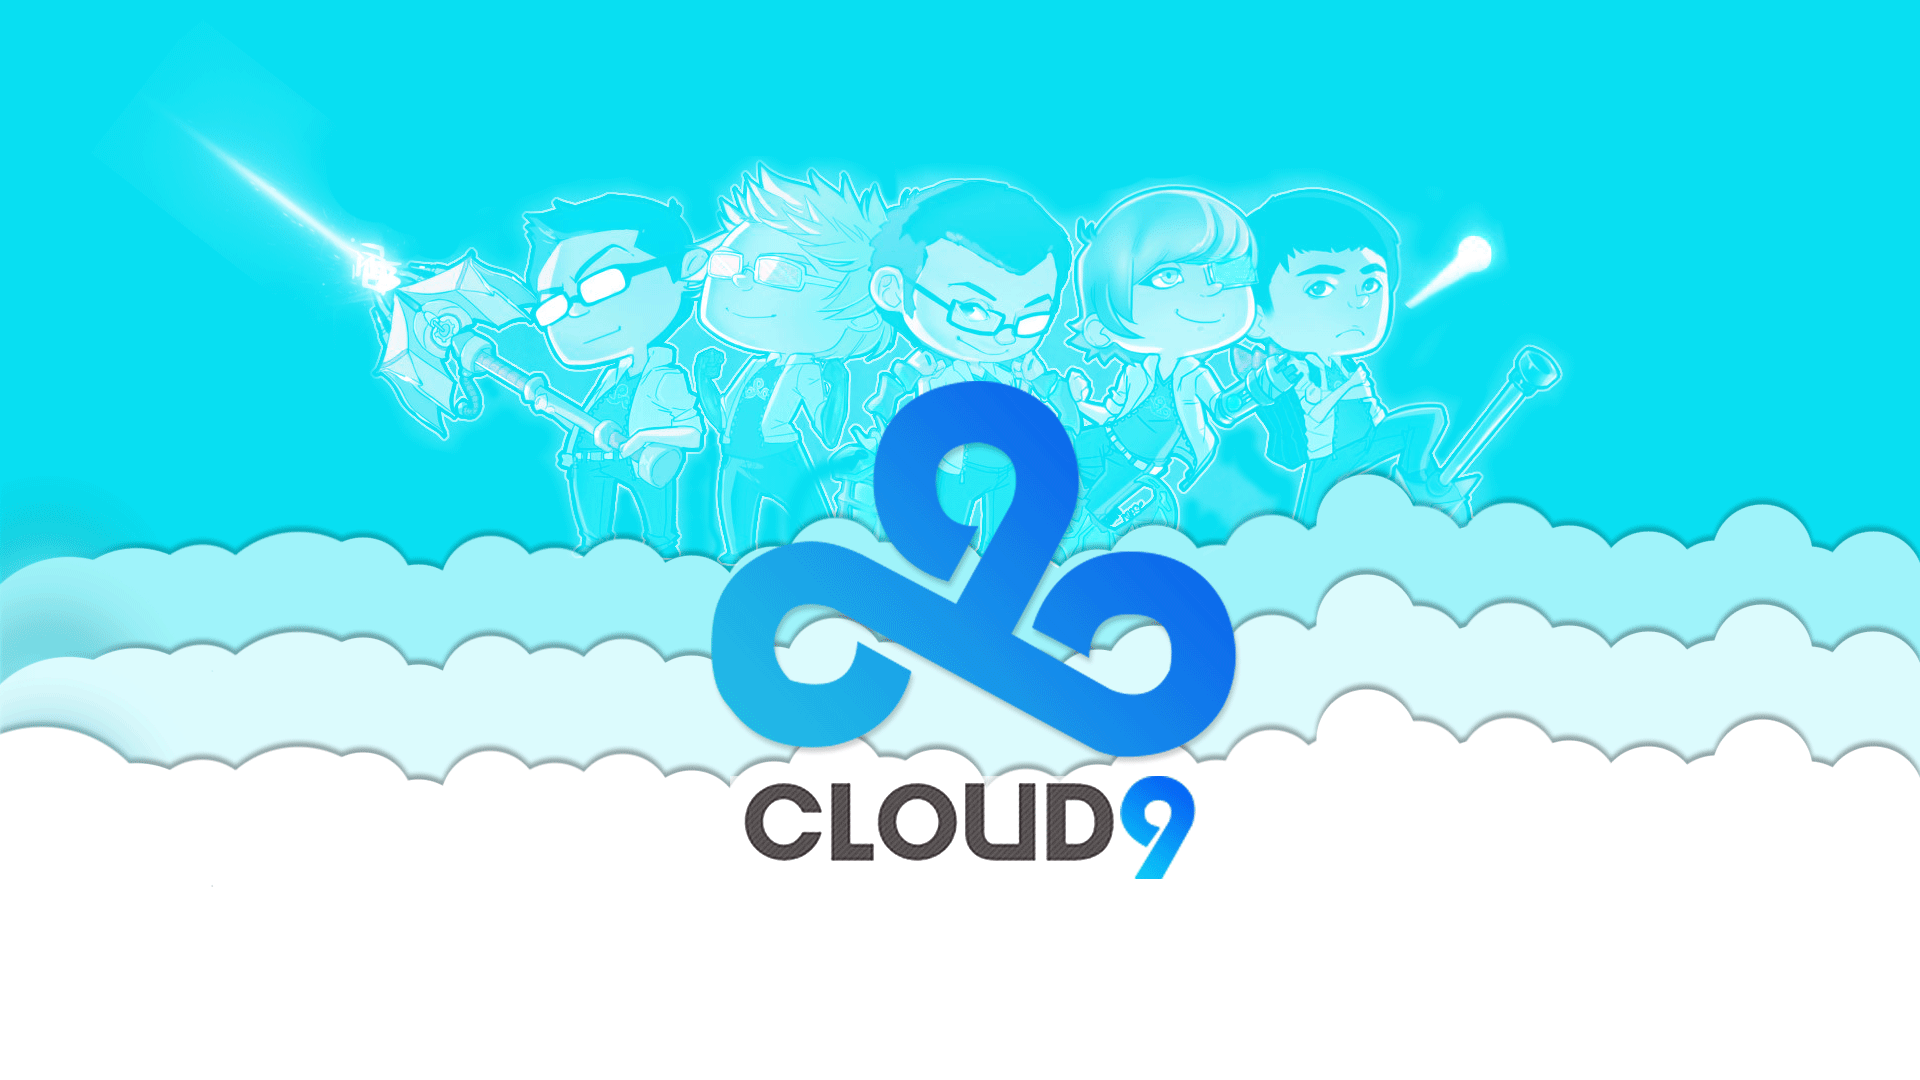 video Games Cloud9 Wallpapers HD  Desktop and Mobile